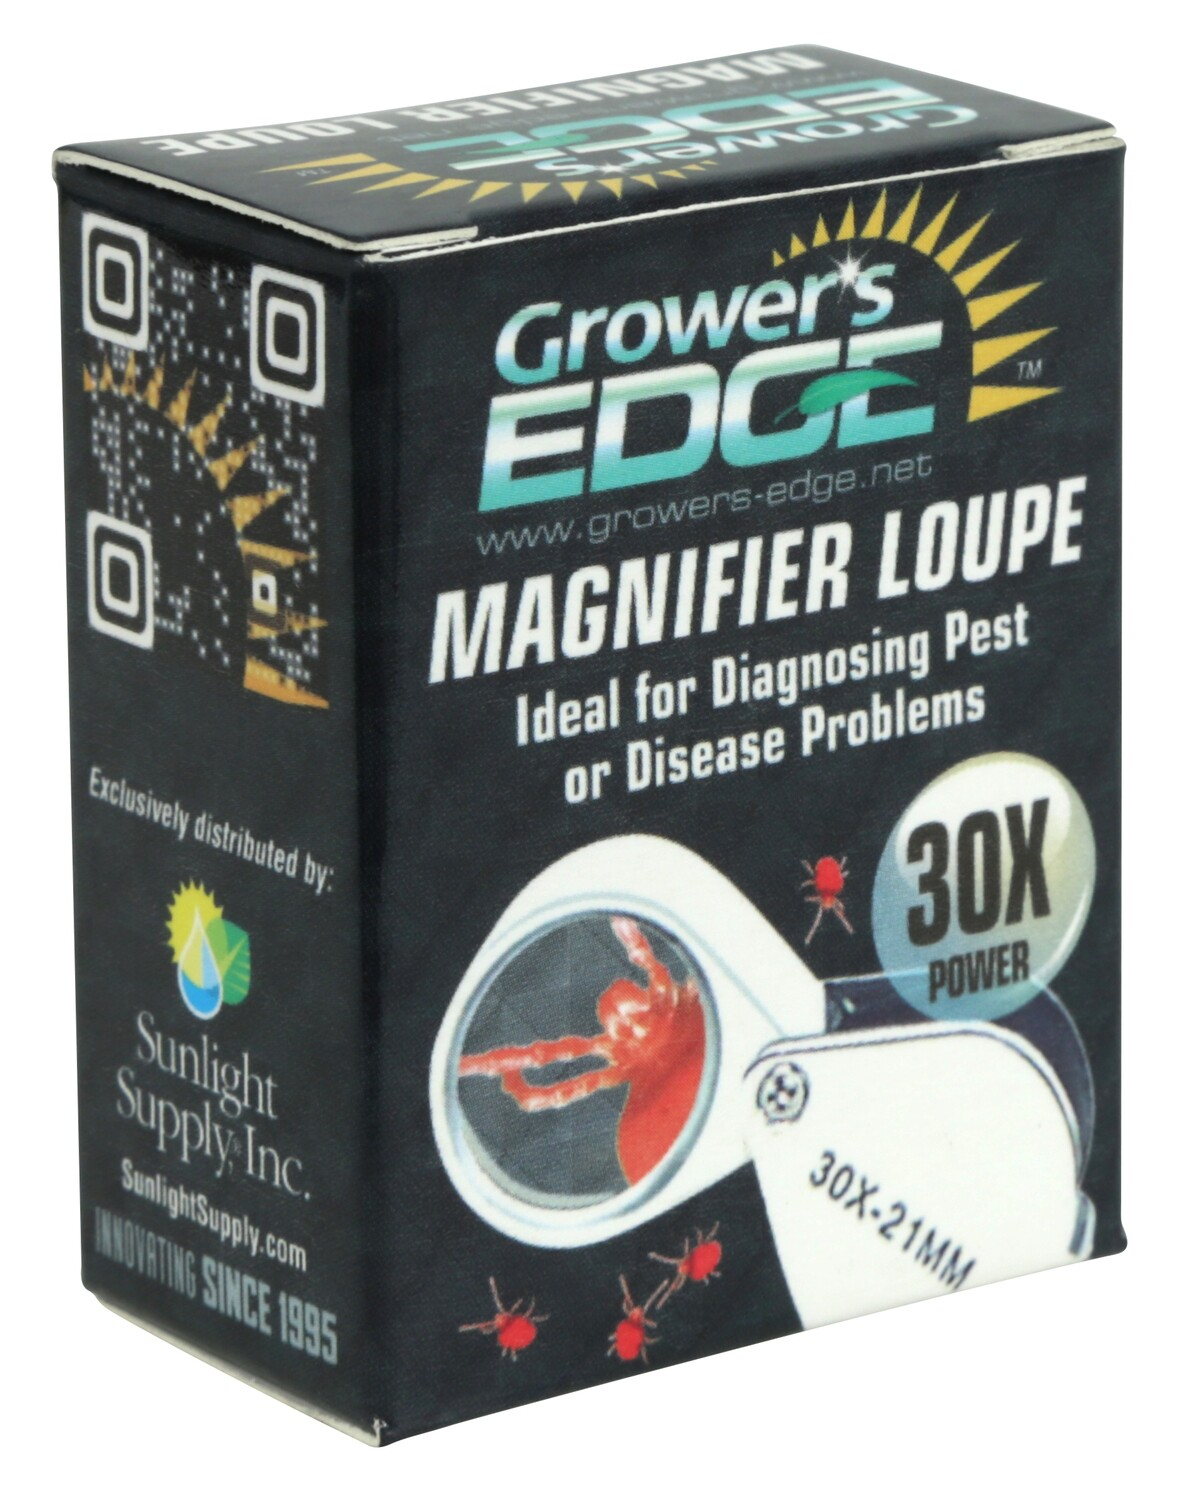 Growers Edge Magnifier Loupe